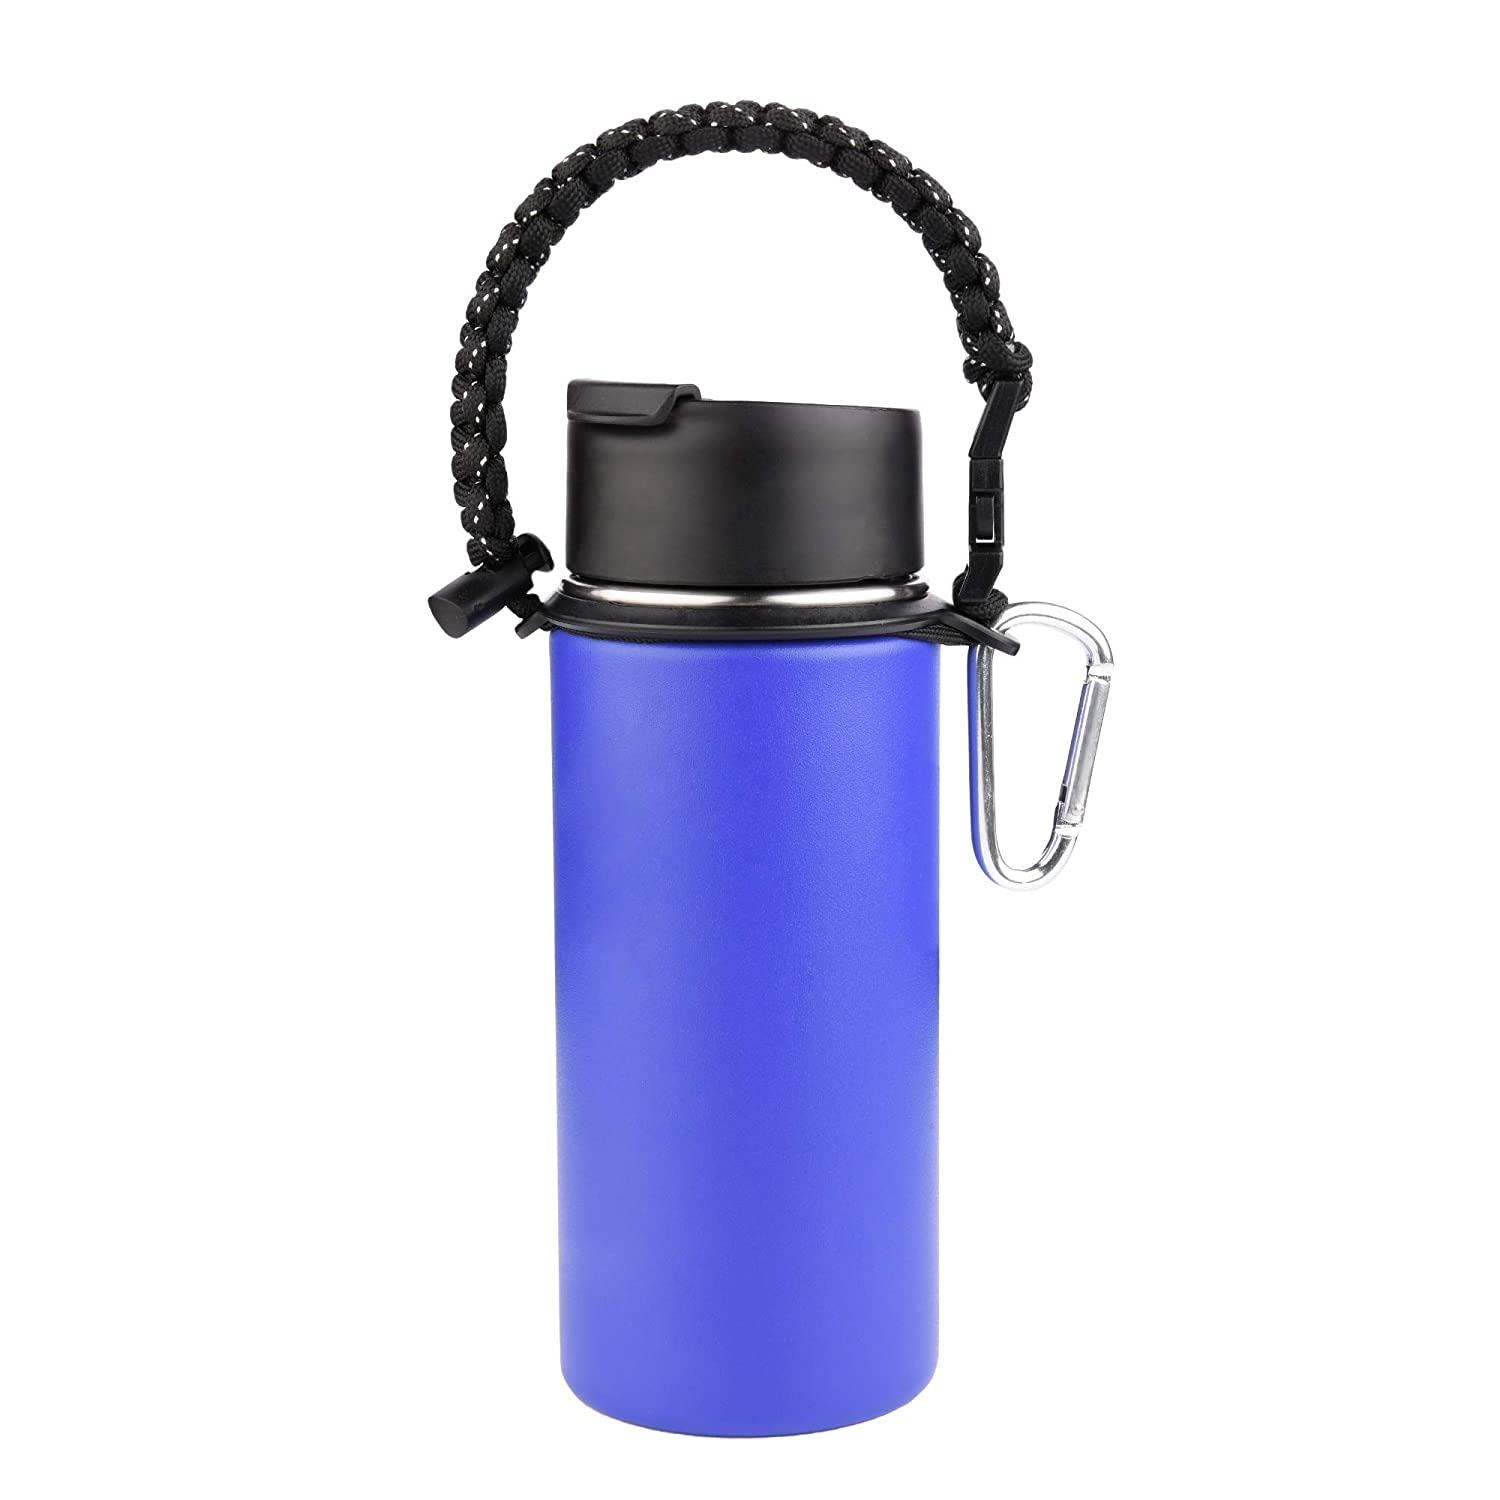 CM Cosmos Water Bottle Paracord Flask Holder Strap with Carabiner for Wide Mouth Bottles Outdoor Sport Hiking